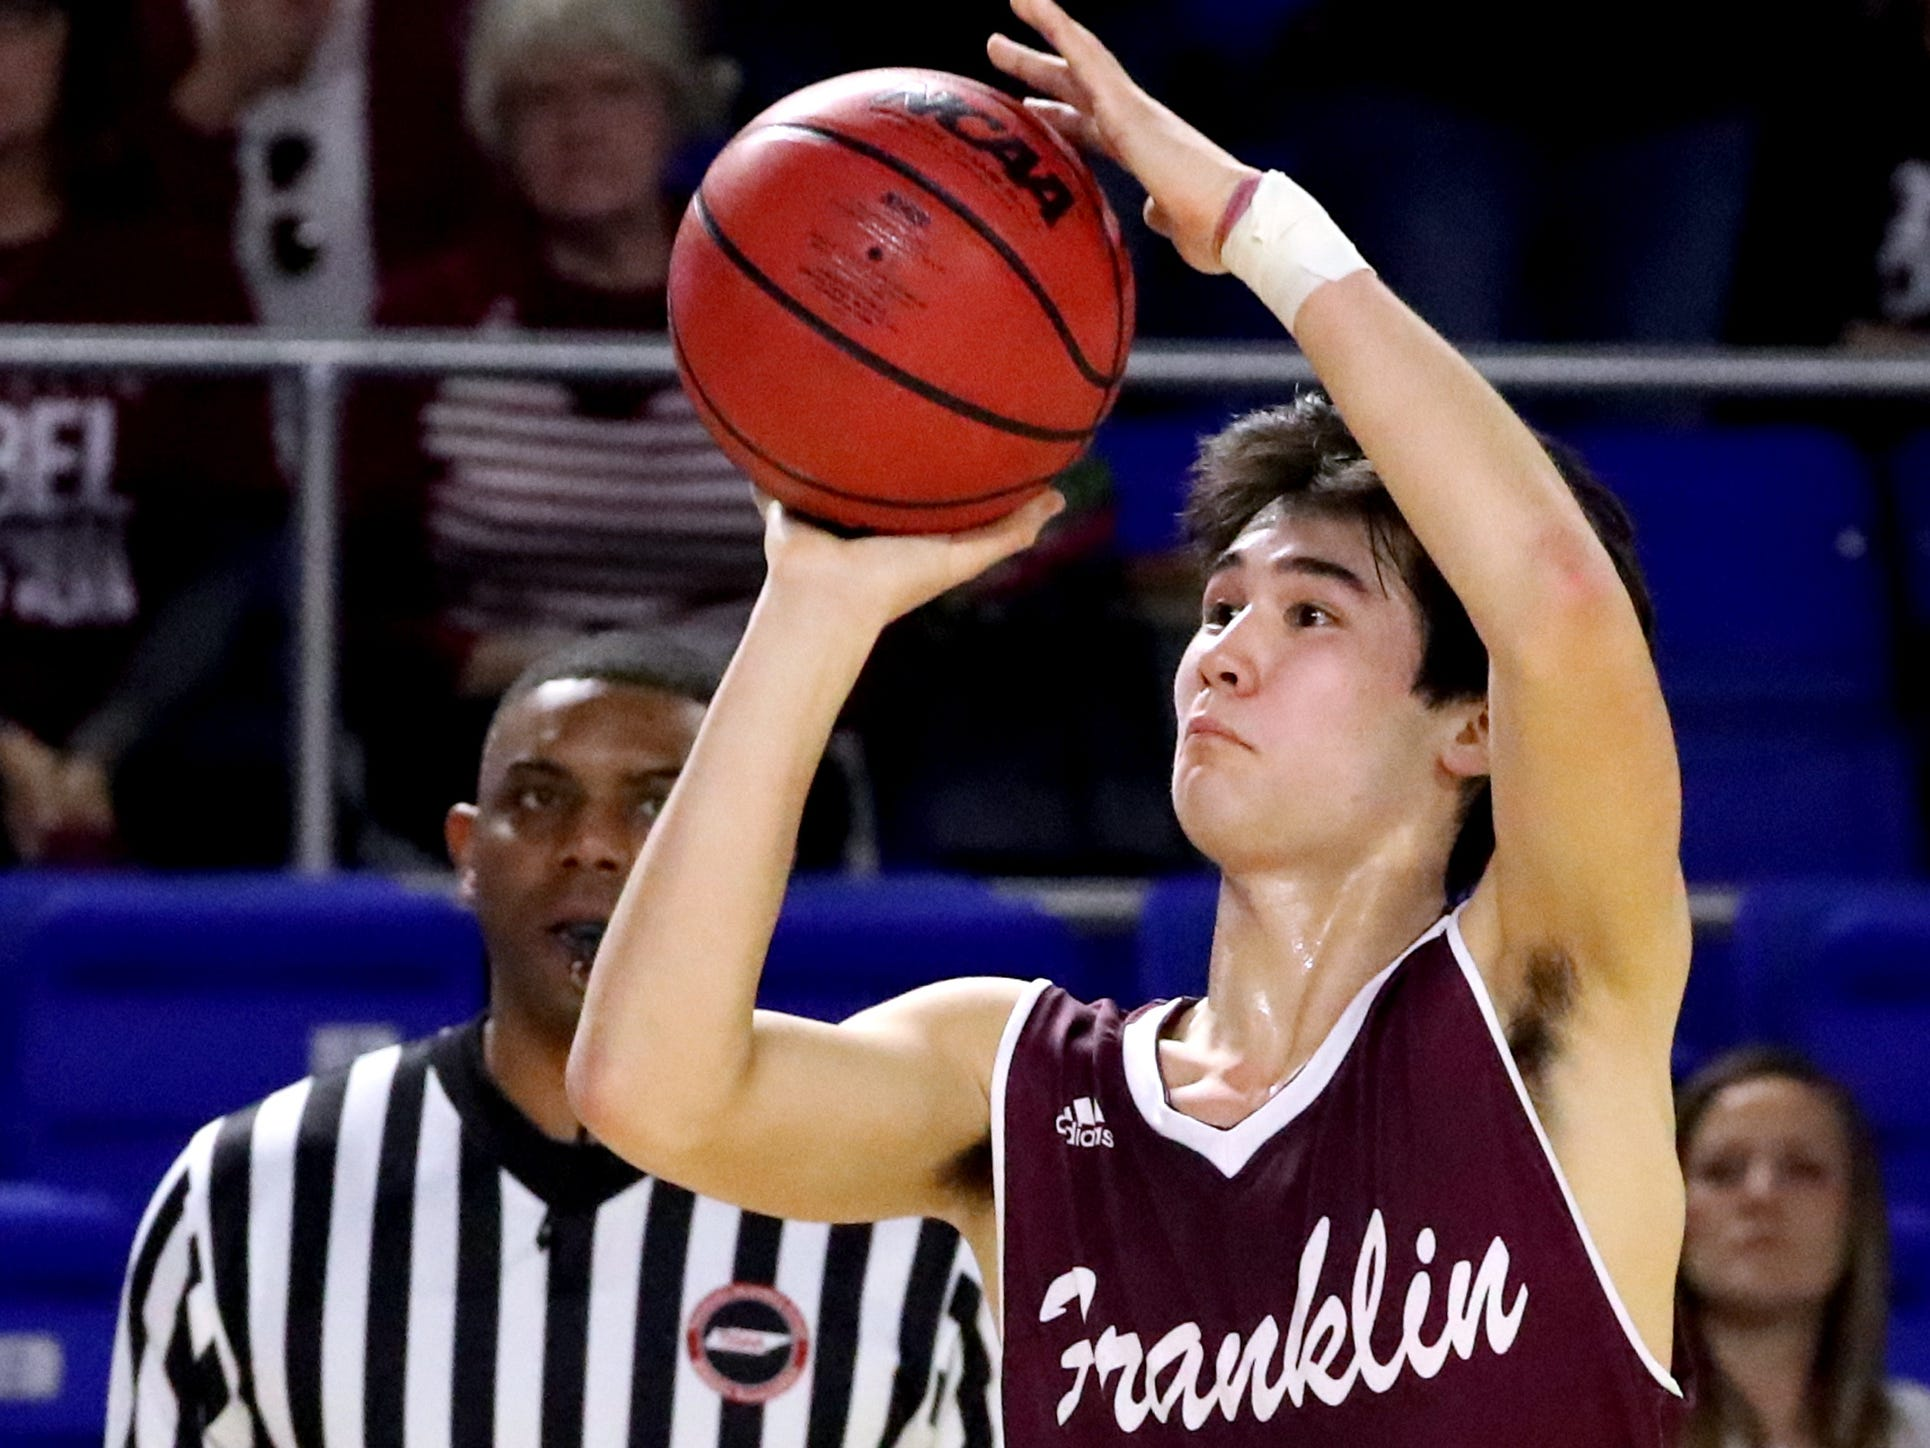 Franklin's Reed Kemp (4) shoots the ball during the quarterfinal round of the TSSAA Class AAA Boys State Tournament against Bearden, on Wednesday, March 13, 2019, at Murphy Center in Murfreesboro, Tenn.